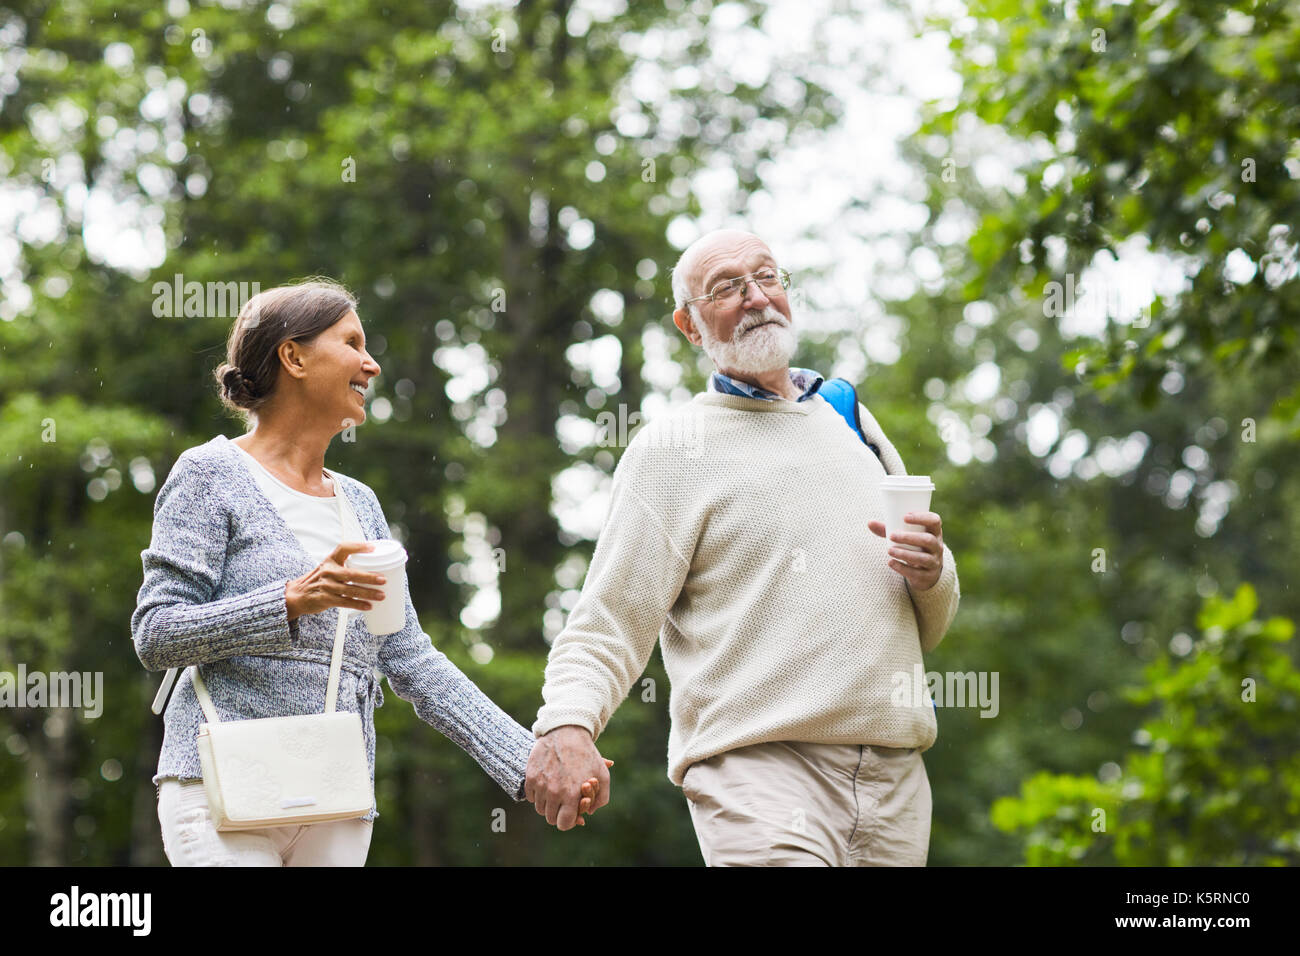 Walk in the park - Stock Image